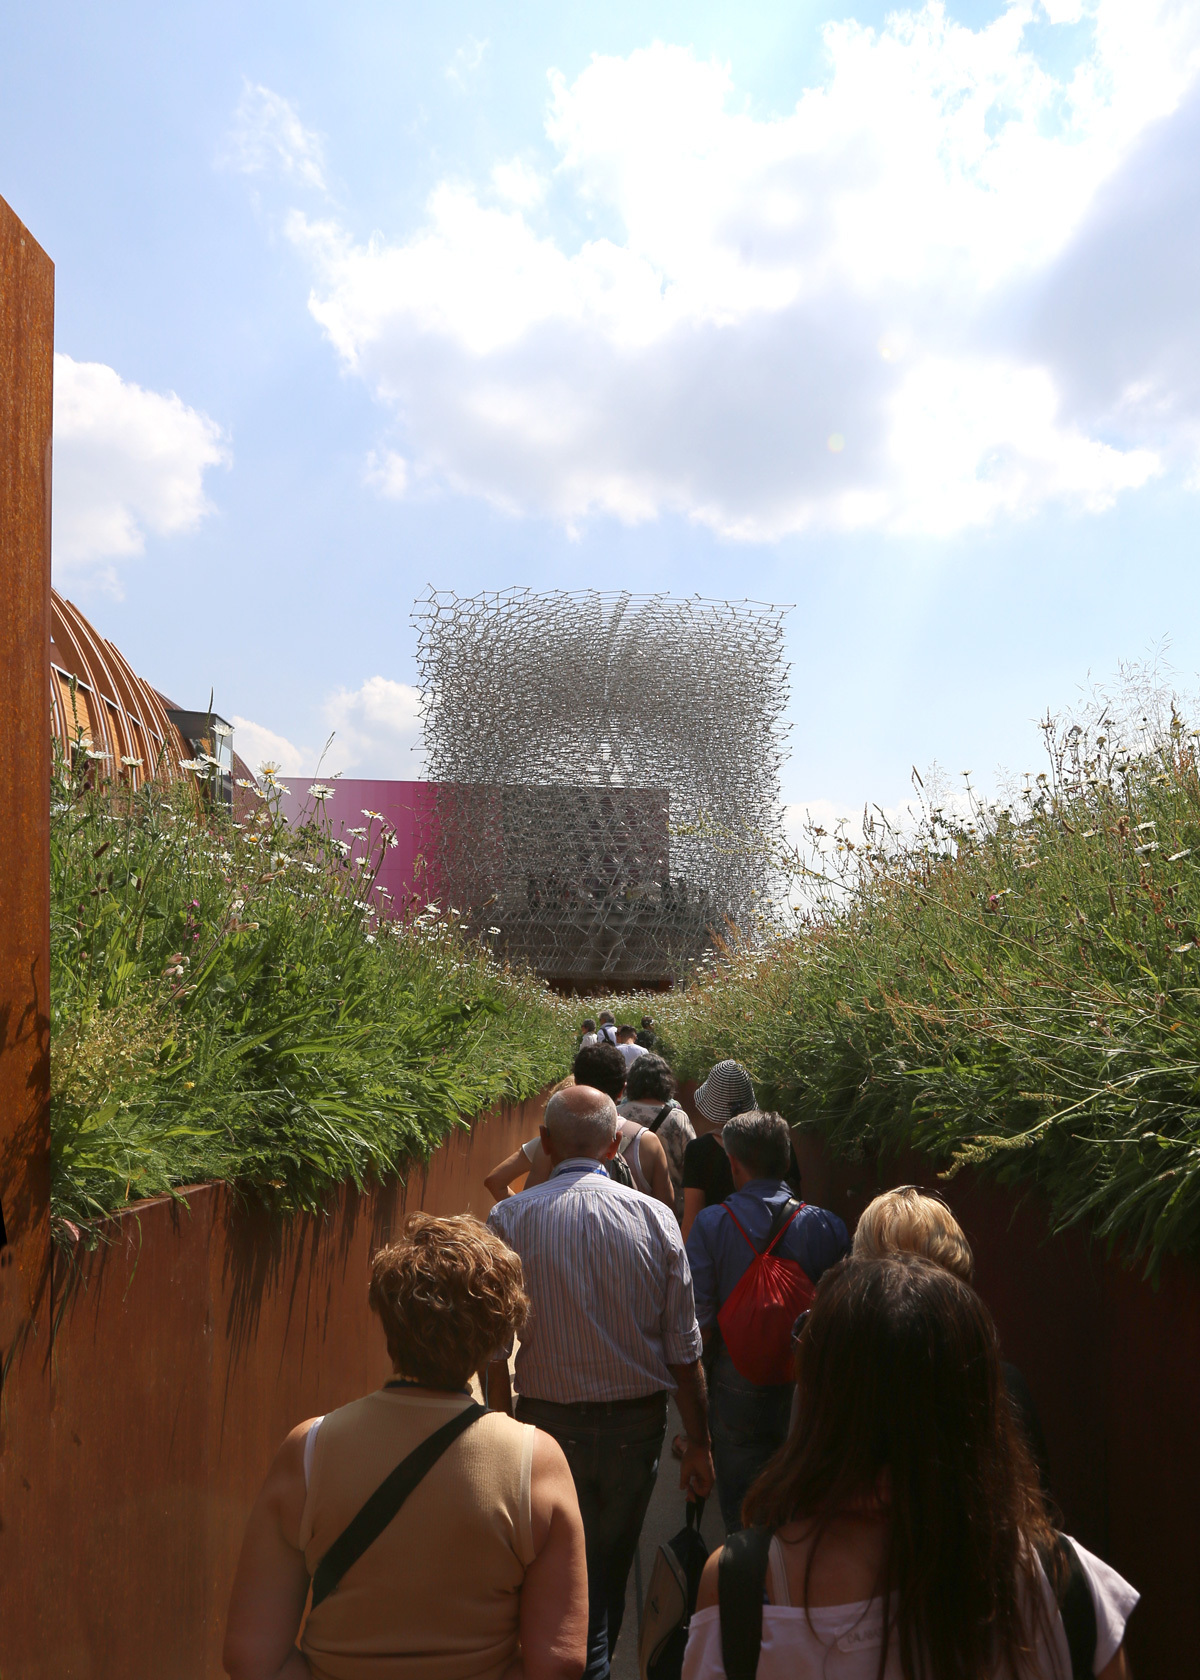 Expo 2015, UK Pavilion, Milan, Italy - L'oeil au raz de l'herbe Expo 2015, UK Pavillon, Milan, Italy - Architects BDP - Artist Wolfgang Buttress - Photo Jean-Yves Soetinck